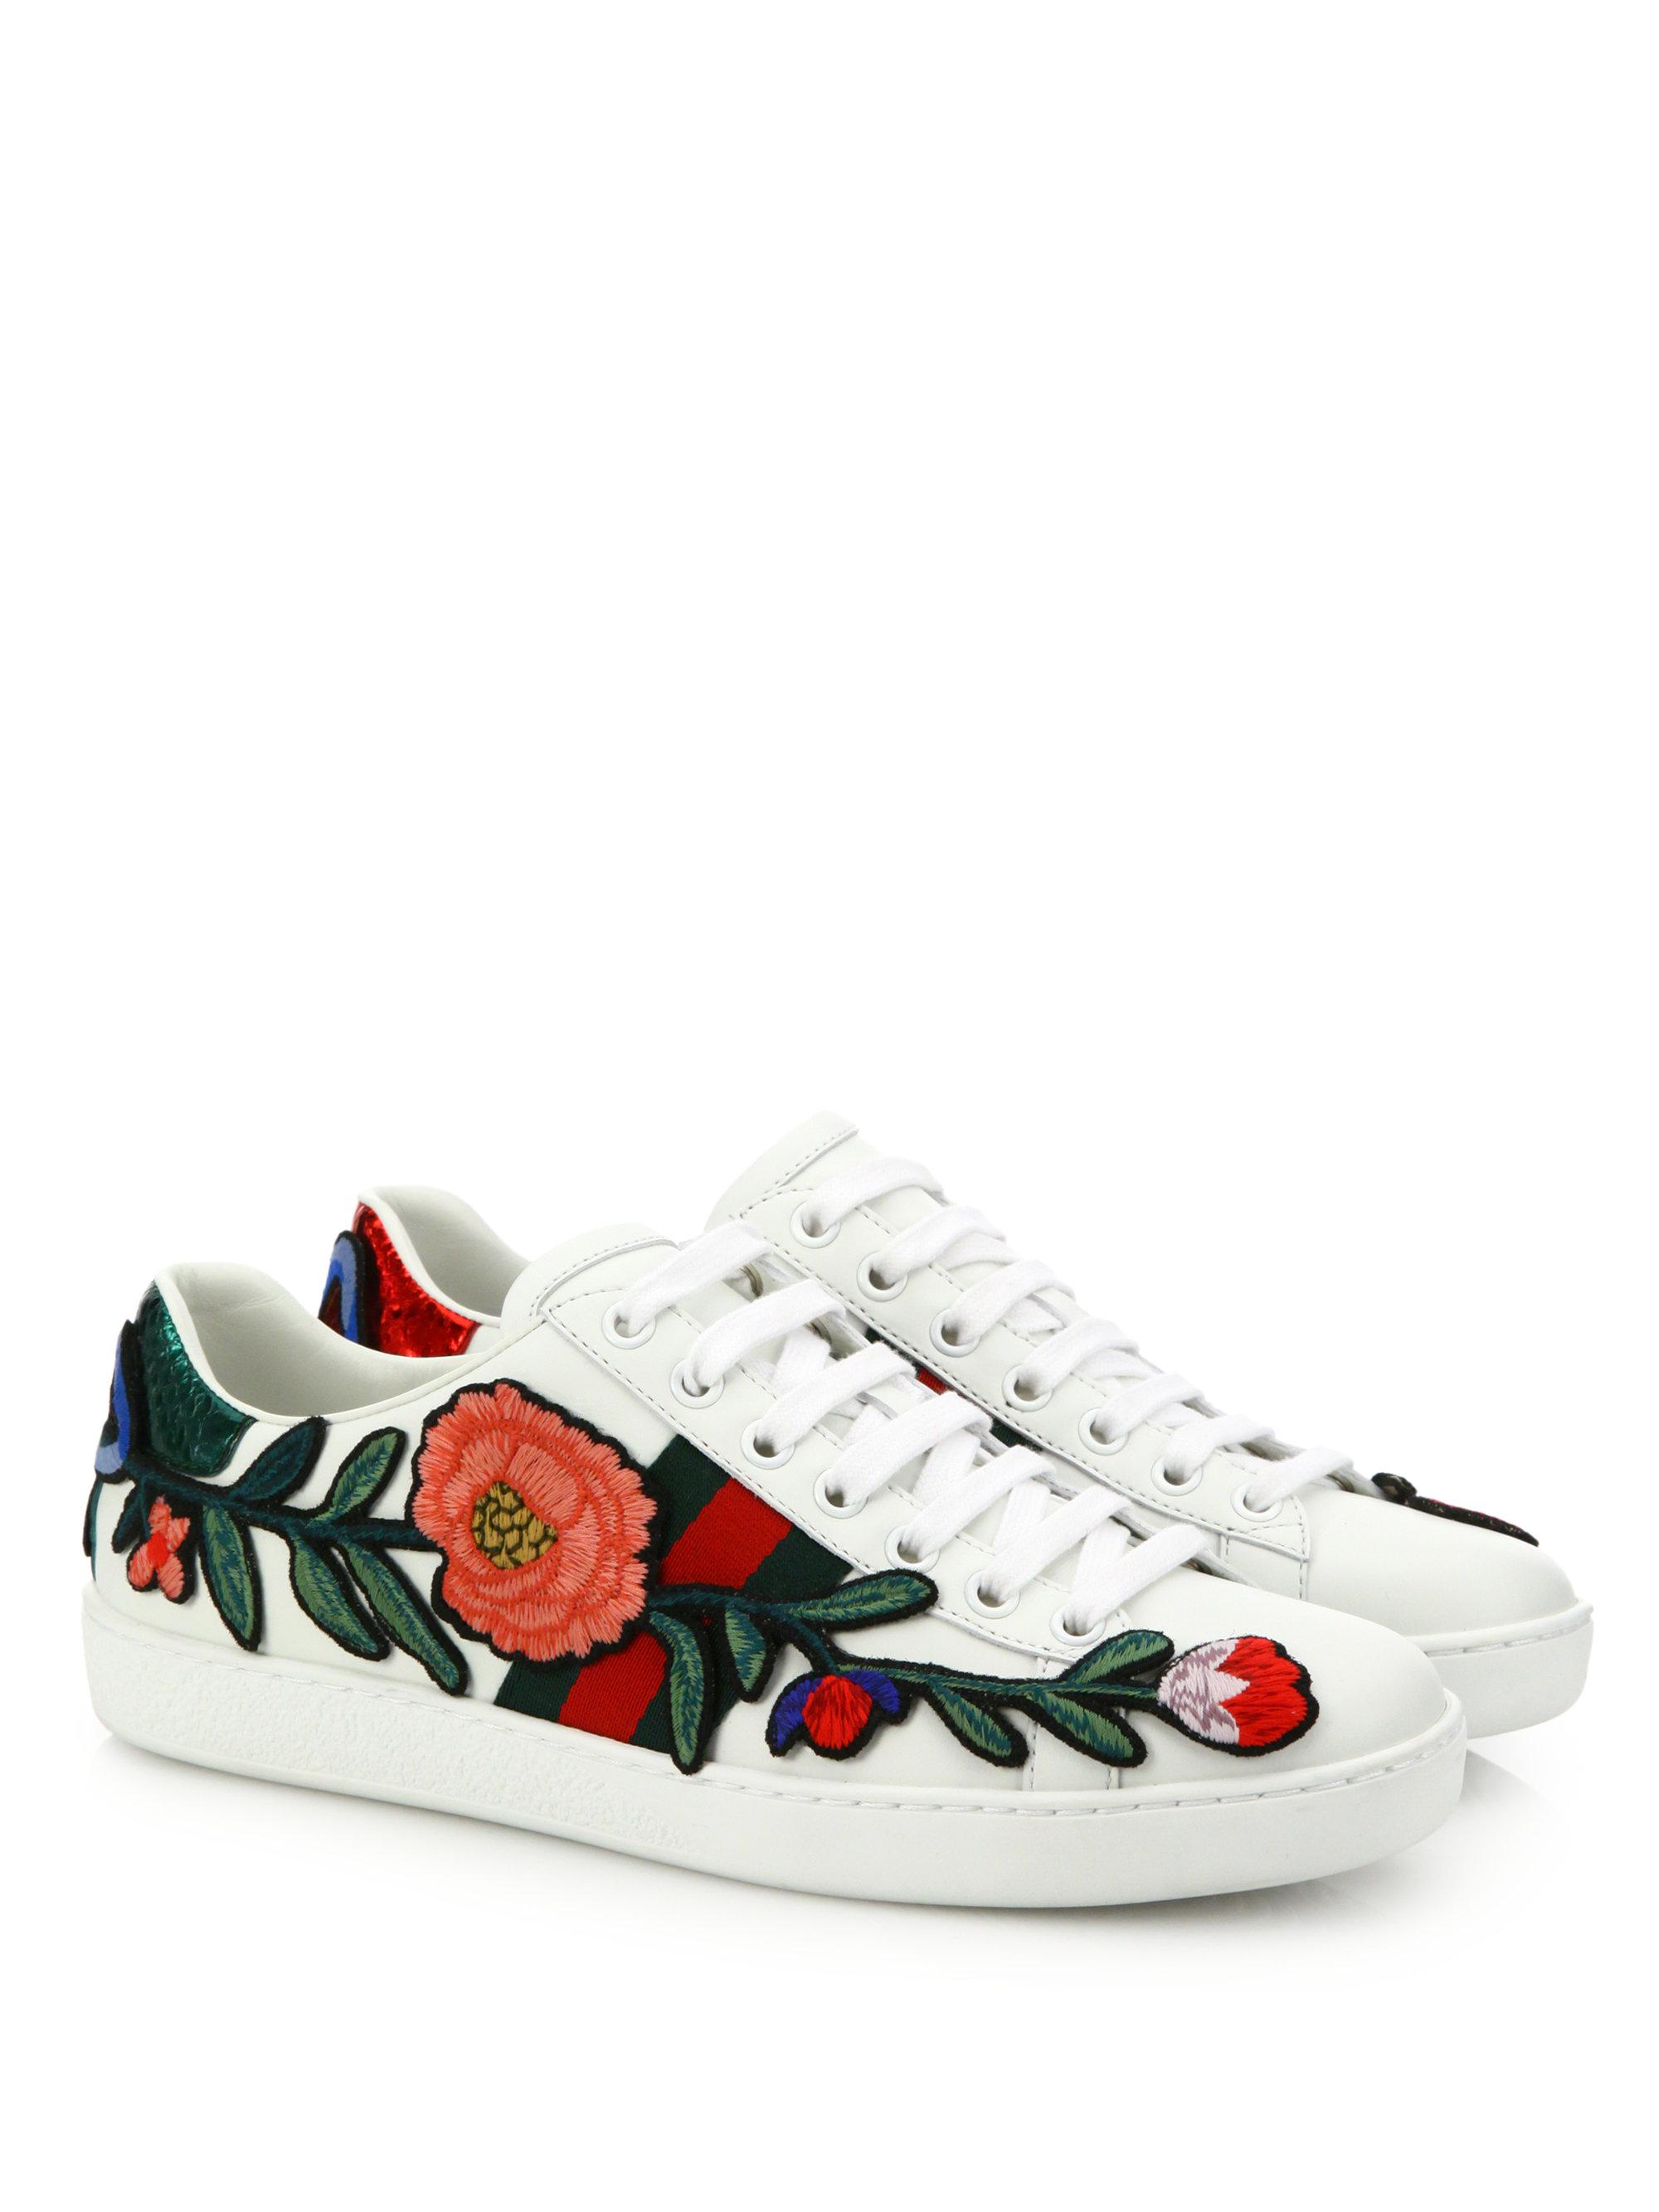 Gucci Leather Ace Embroidered Low-top